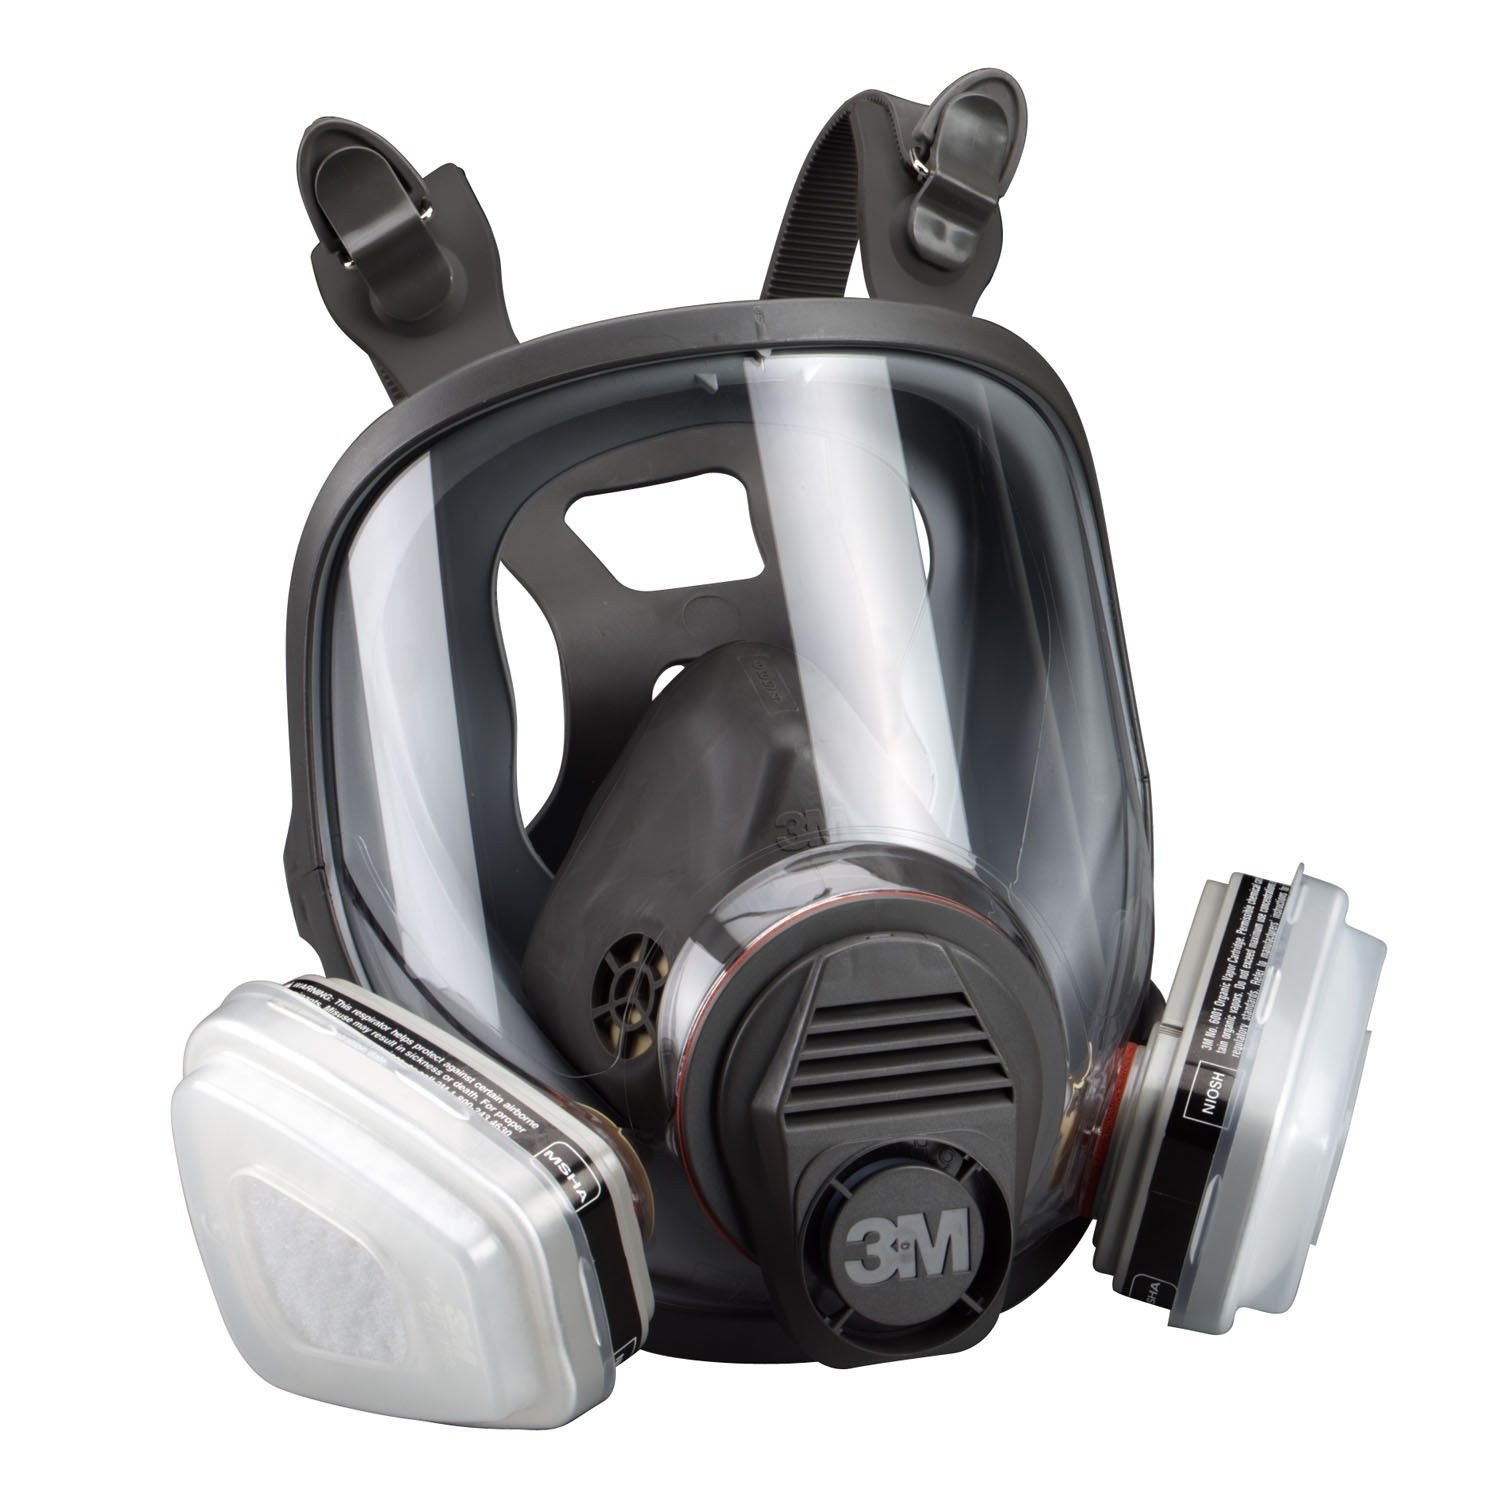 3M 07163 Full Facepiece Respirator Packout Organic Vapor P95, Large by 3M